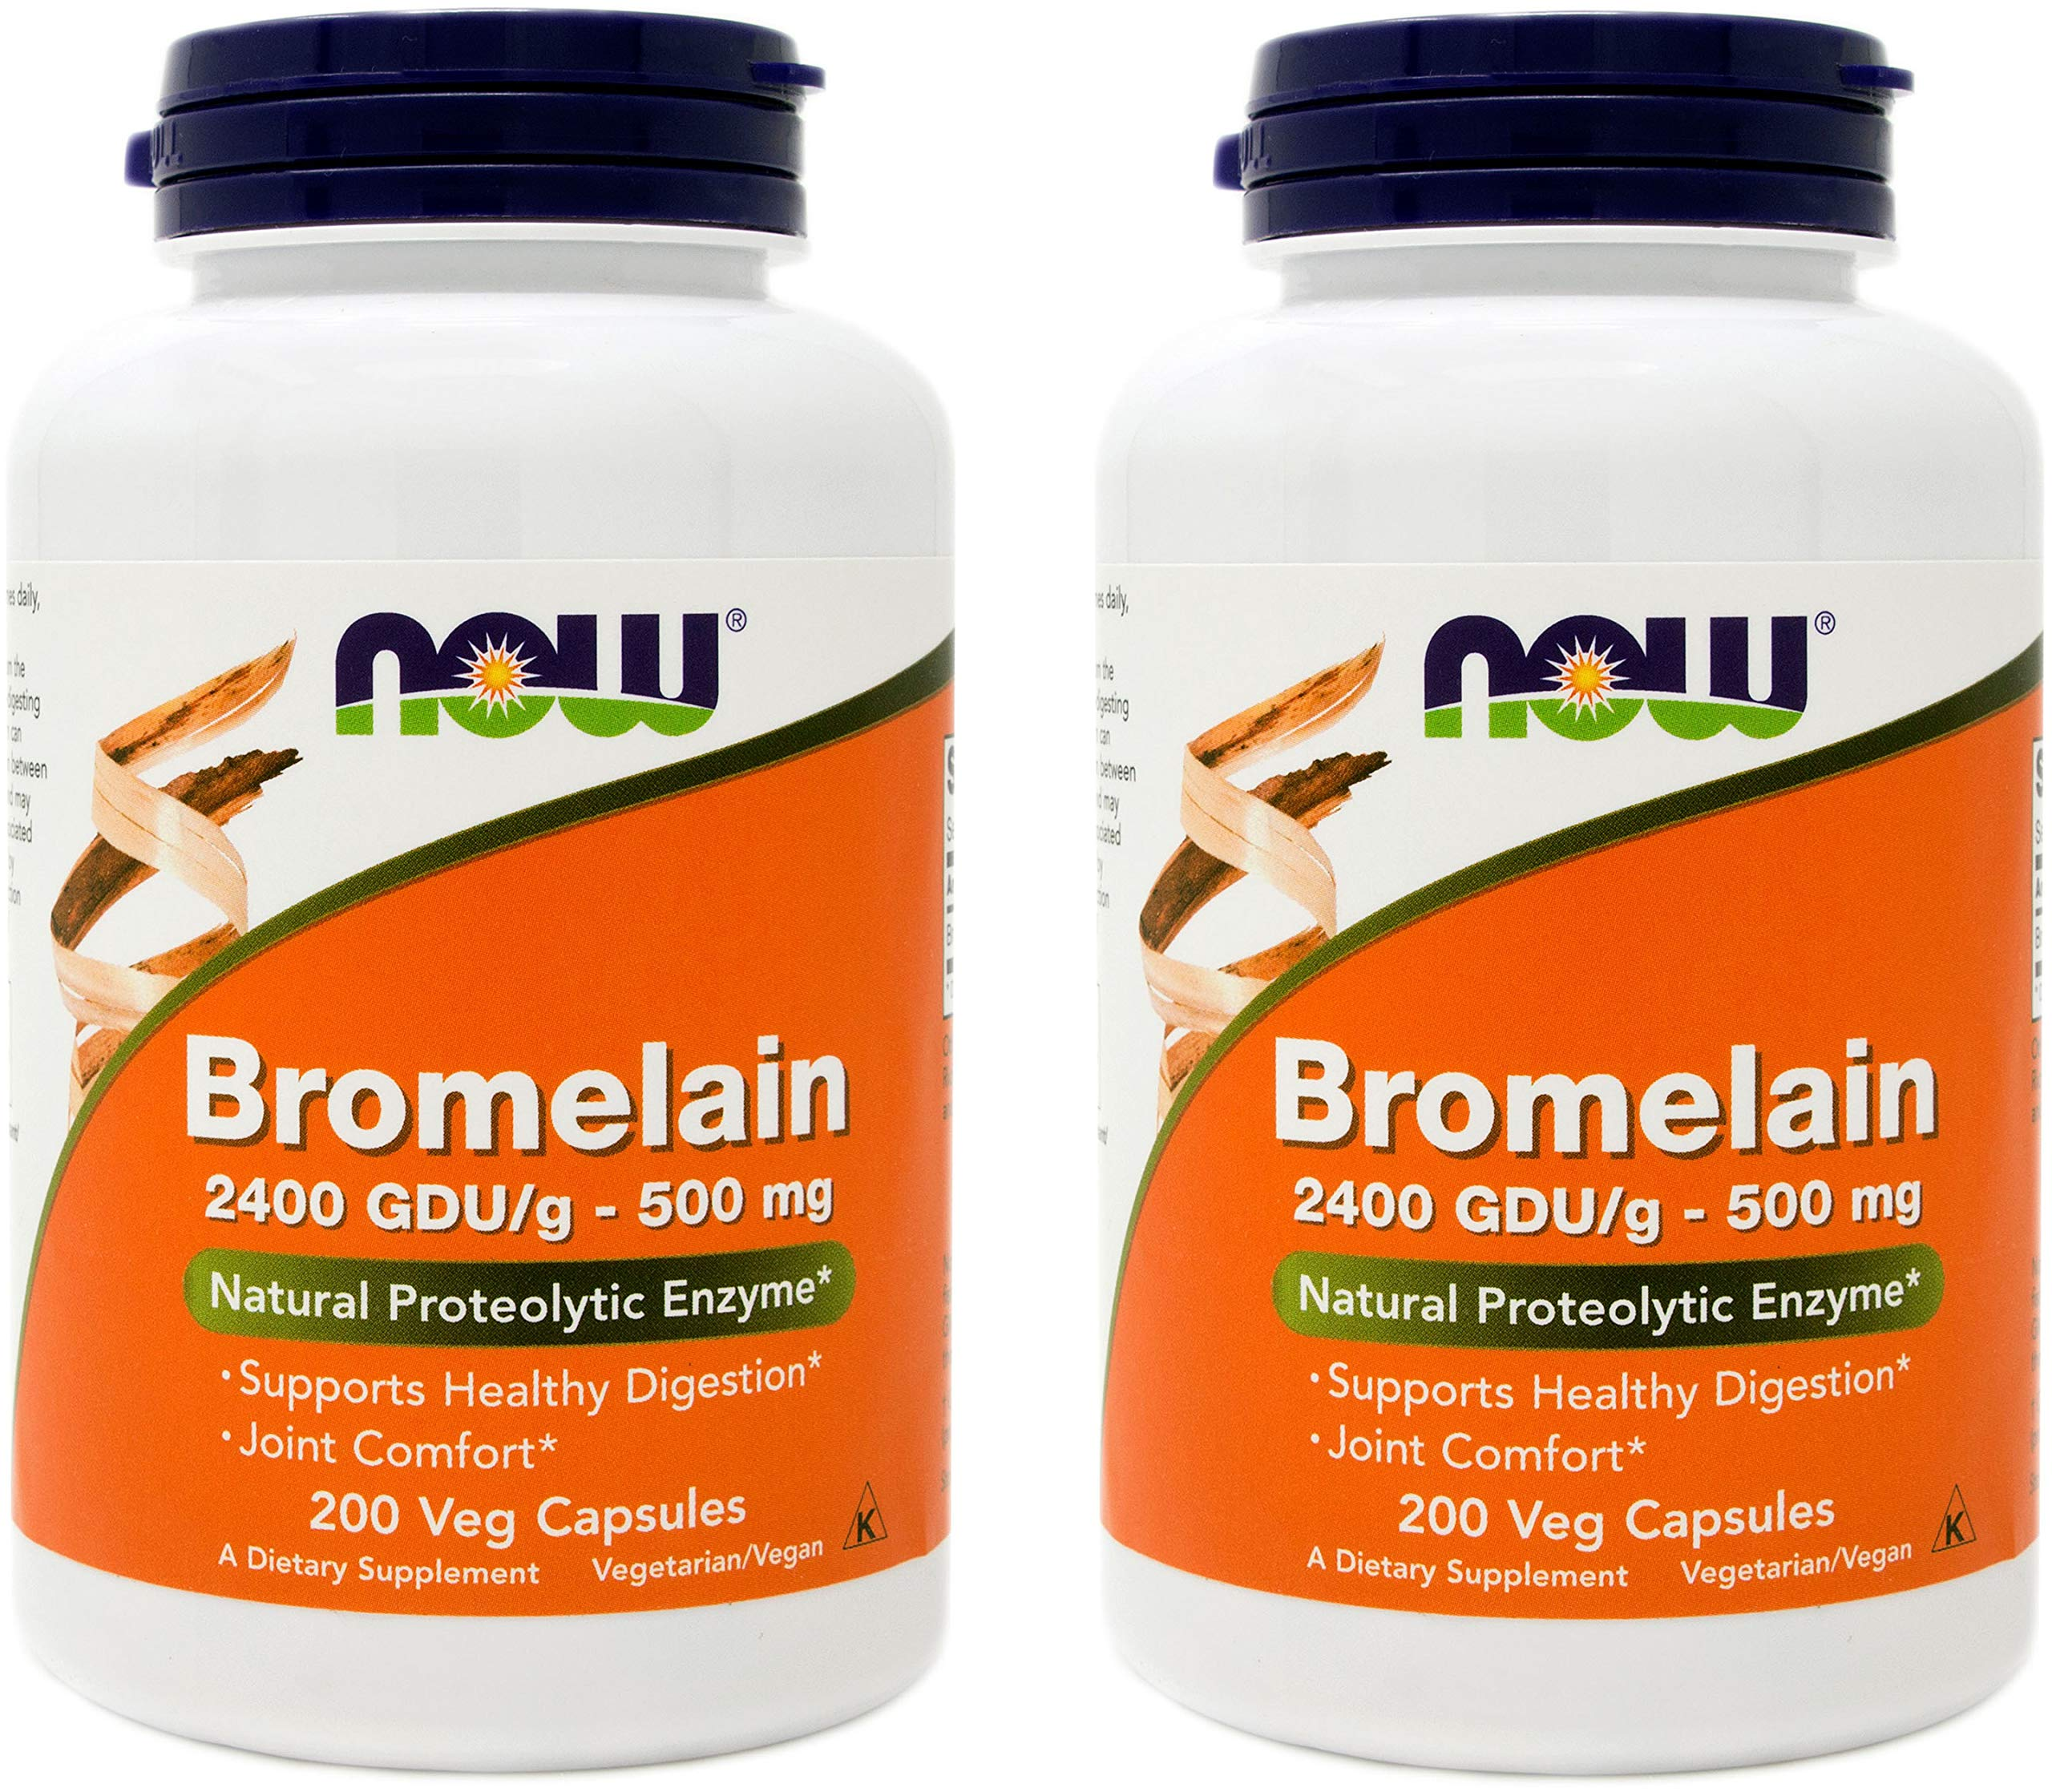 Now Bromelain 500 mg, 200 Veg Capsules (Pack of 2) - Natural Pineapple, Proteolytic Enzyme Supplement, 2400 GDU